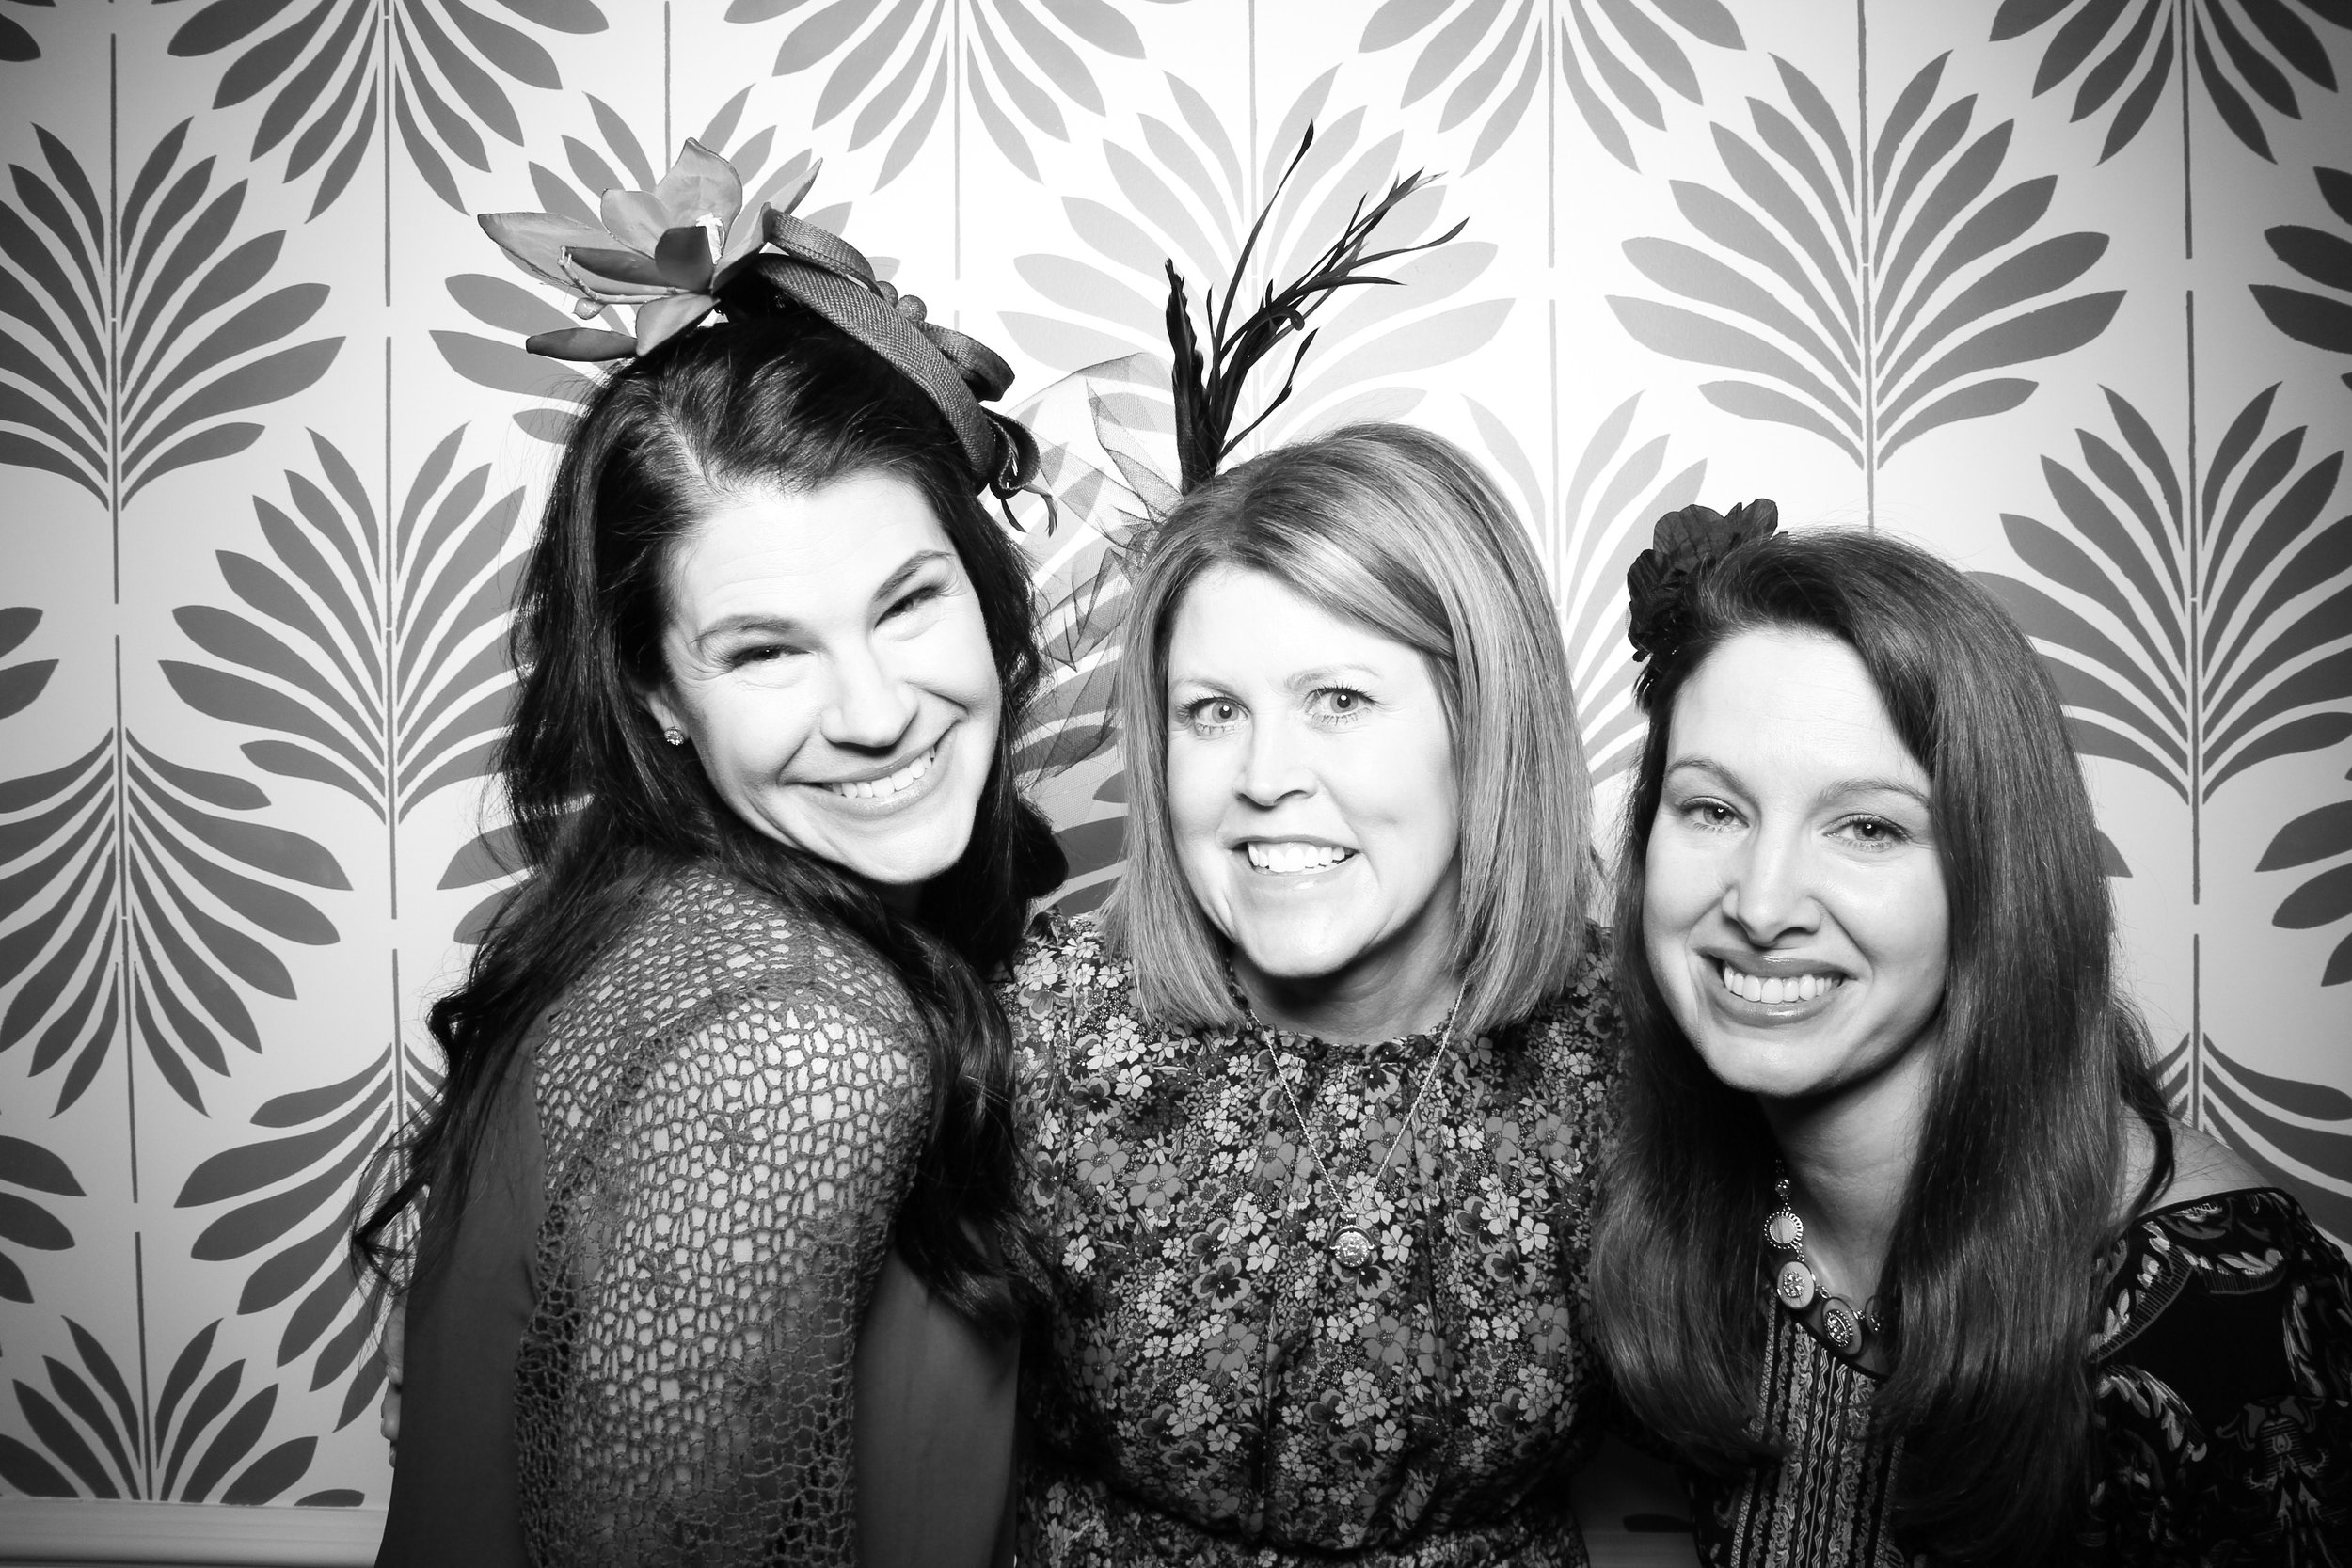 LaGrange_Country_Club_Photo_Booth_Wedding_Reception__16.jpg